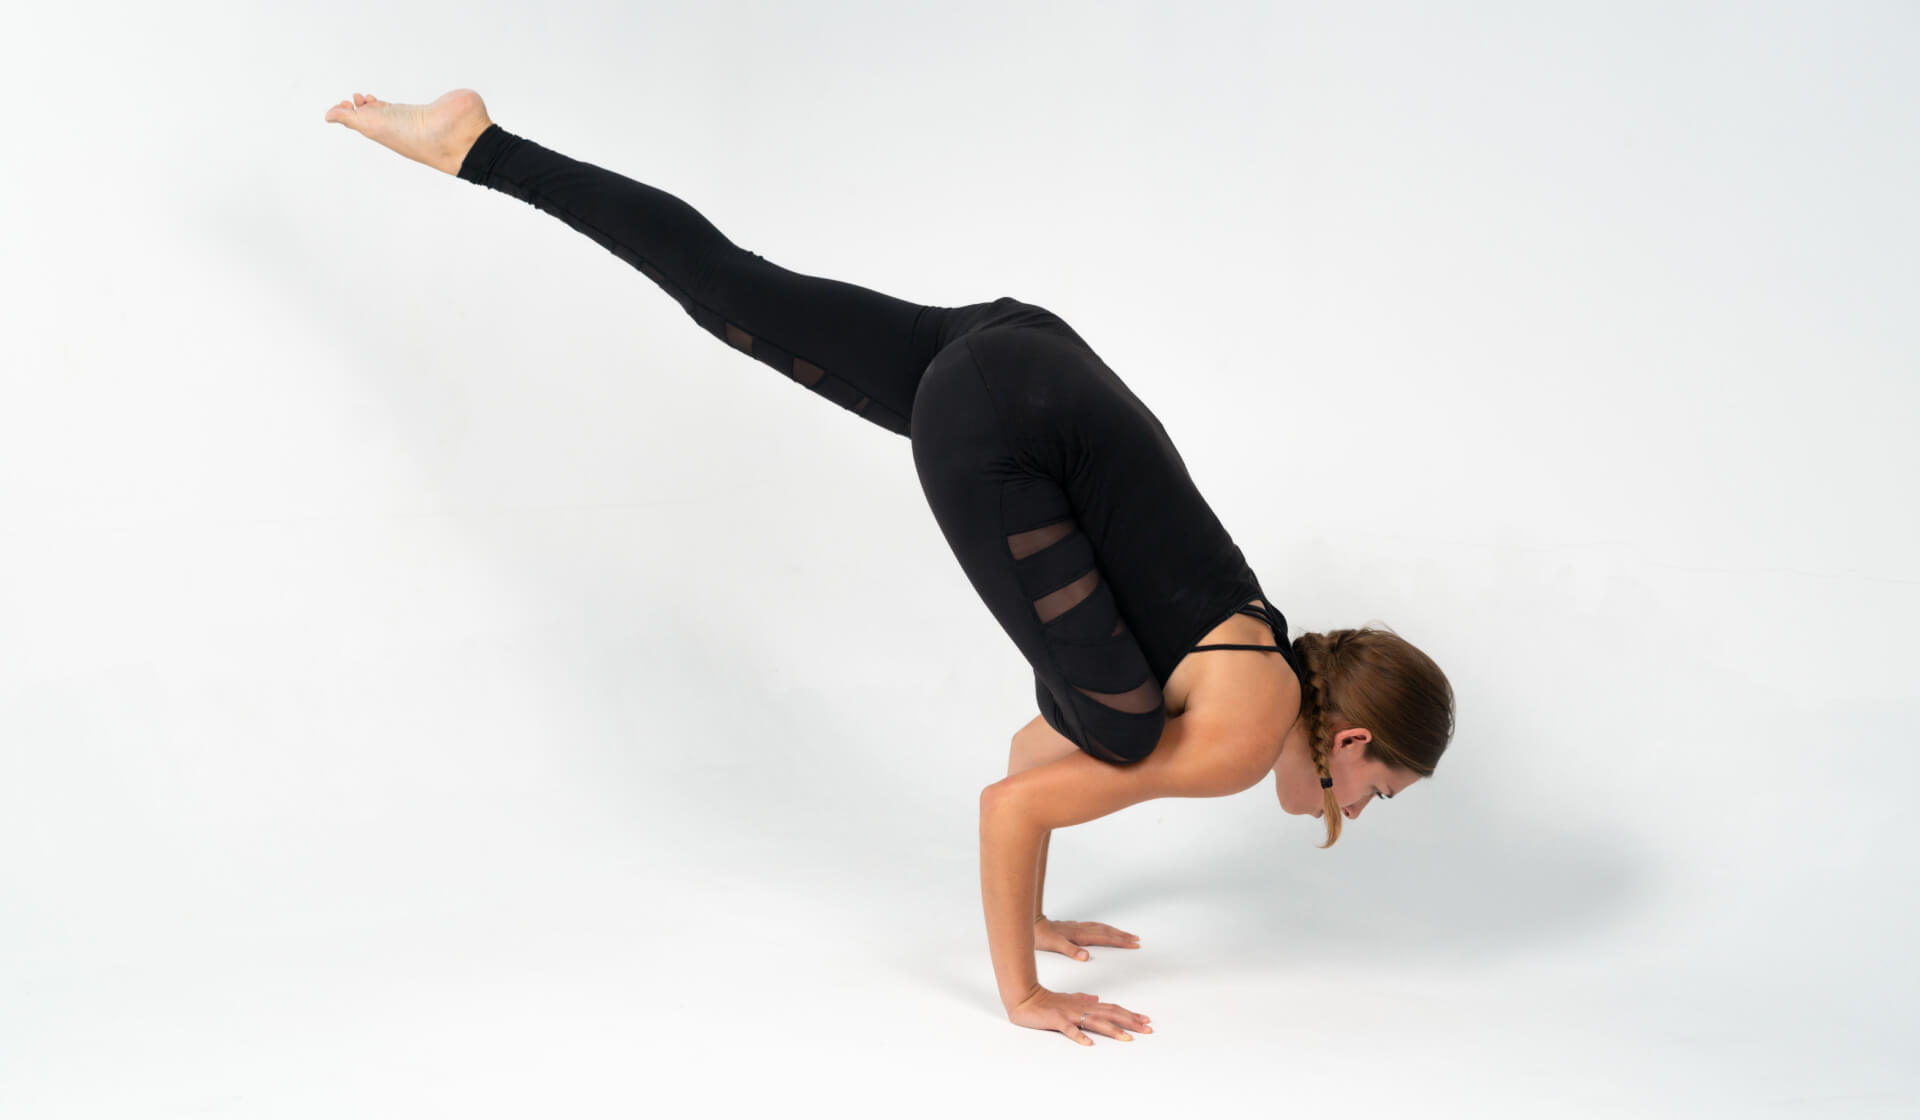 Woman yoga teacher dressed in all black practicing a yoga pose arm balance (flying pigeon pose or eka pada galavasana) against a white backdrop